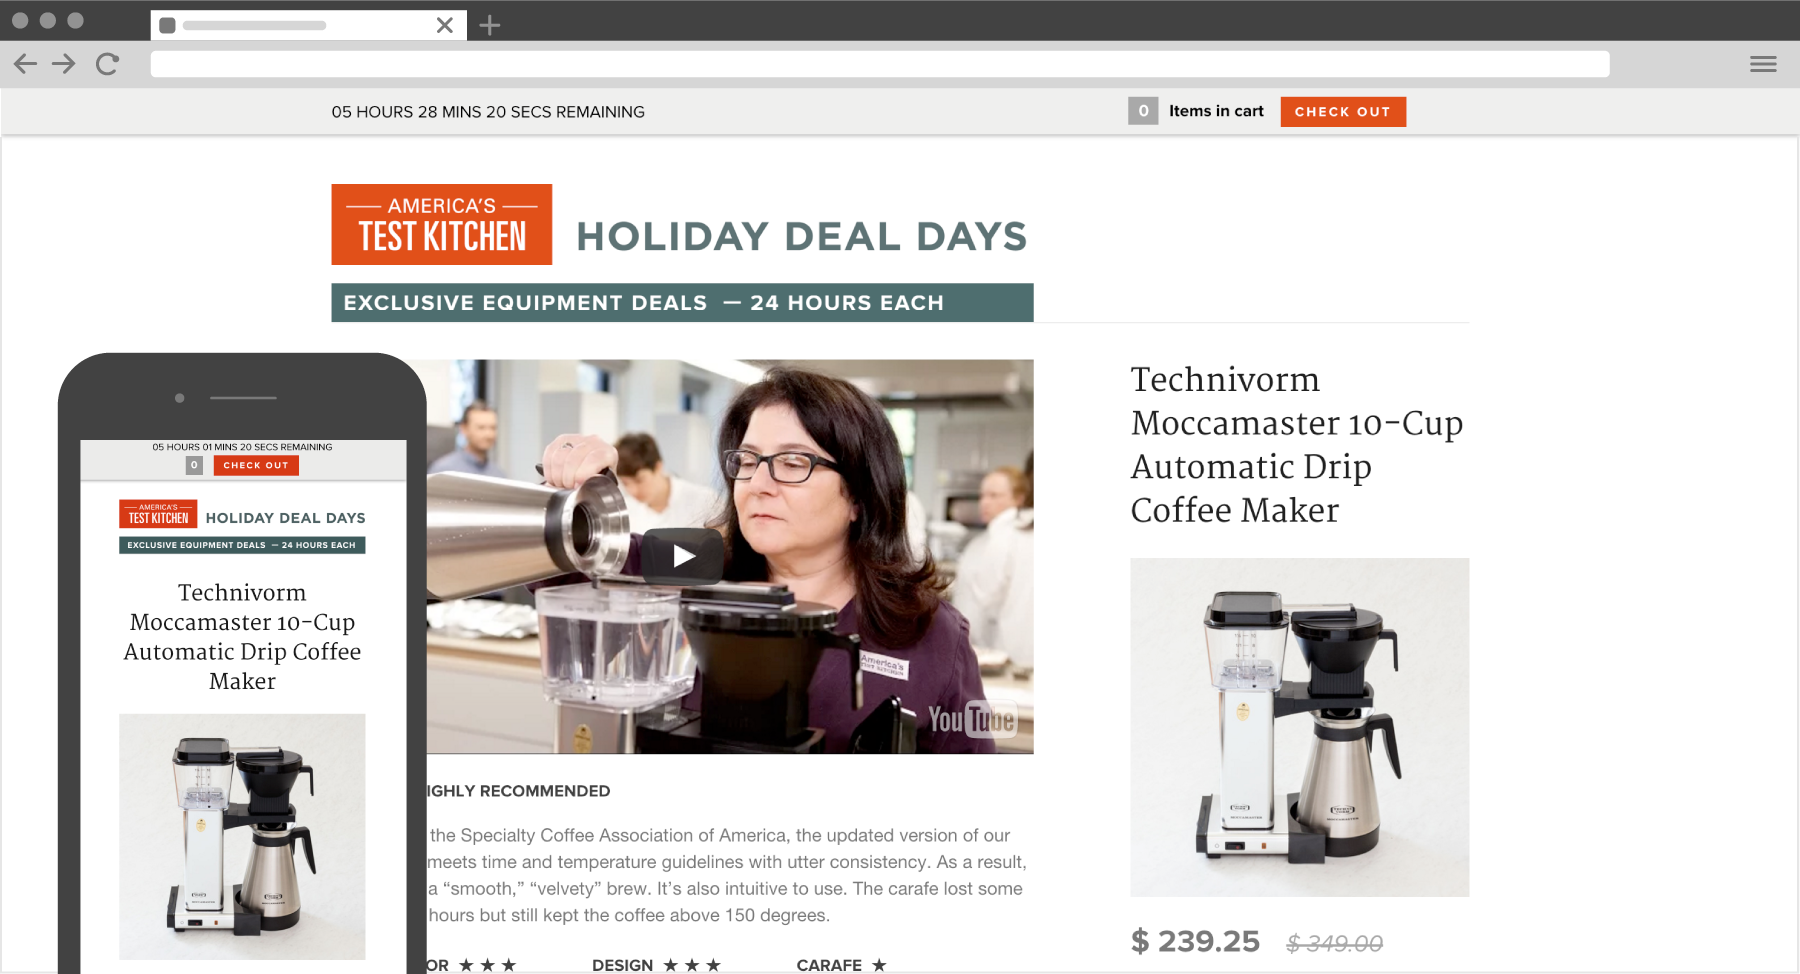 ATK Holiday Deal Days microsite